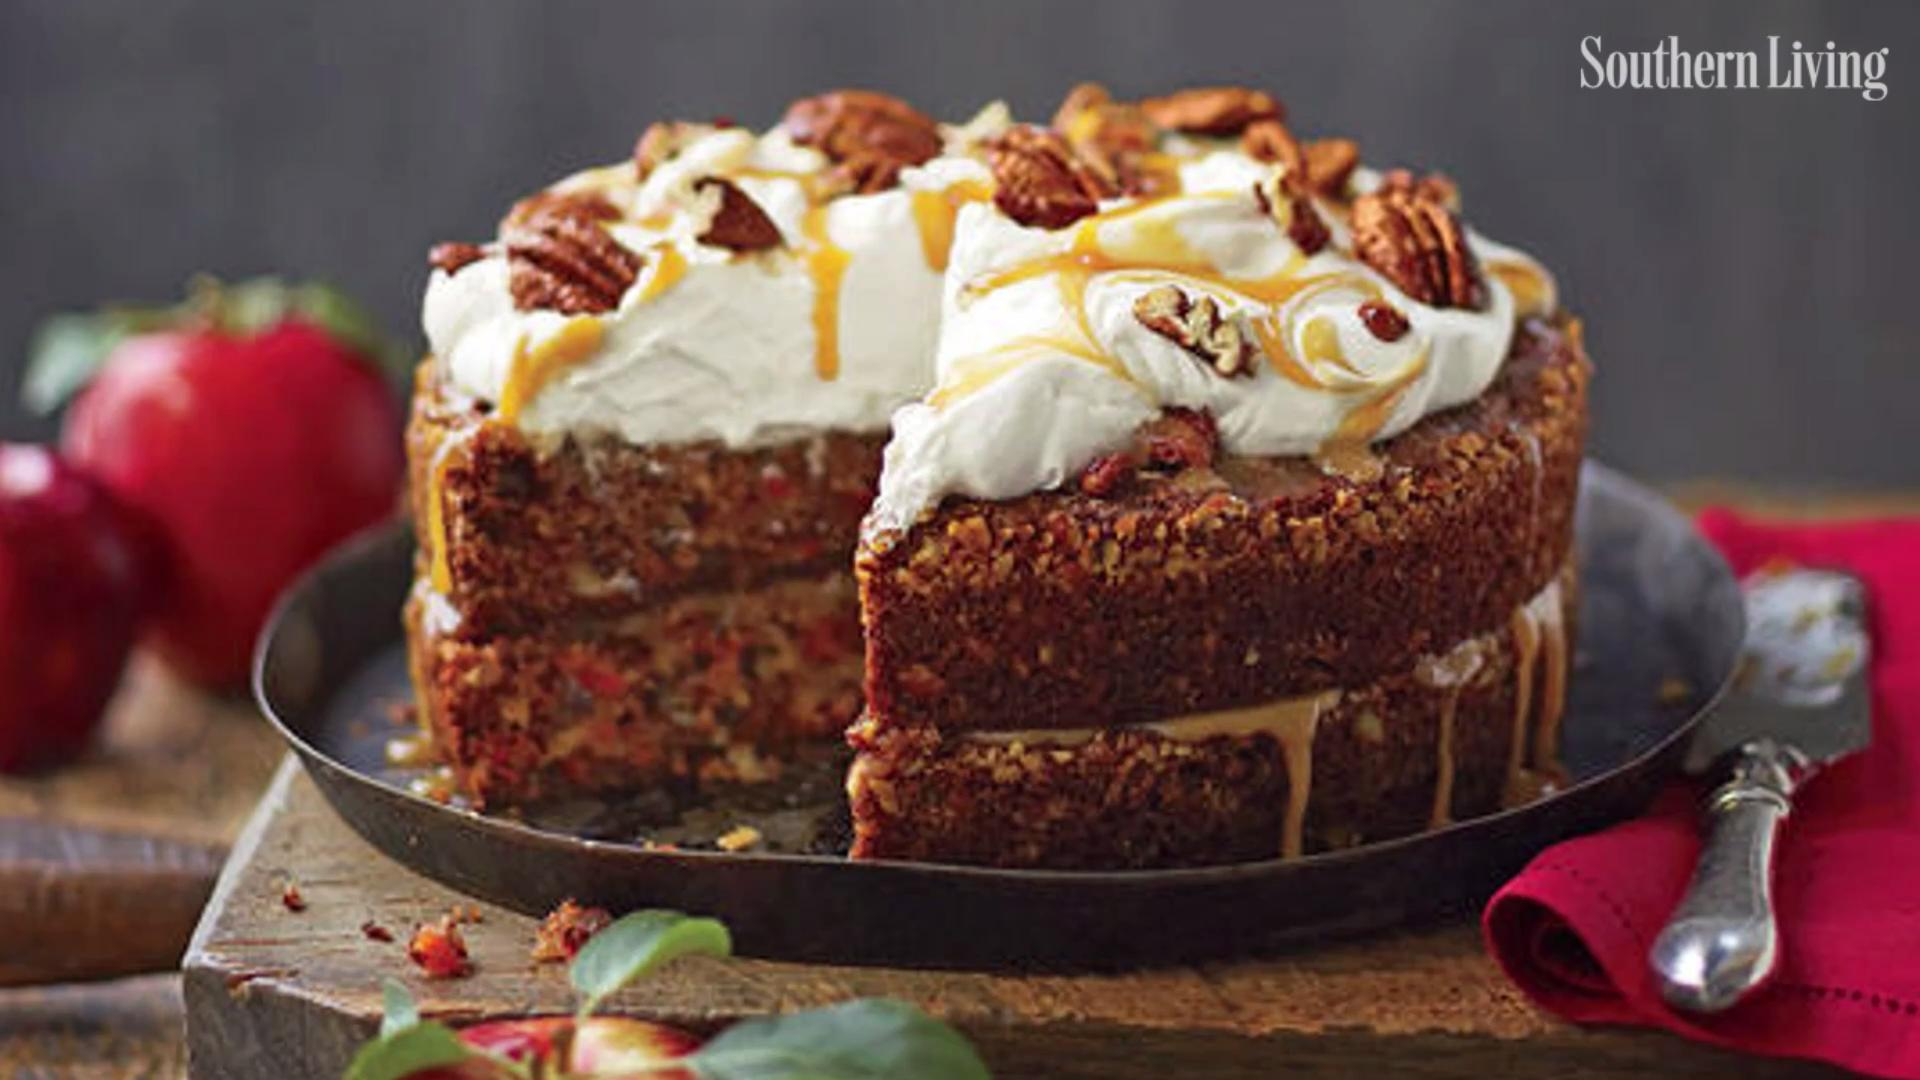 Celebrate the Season With These Desserts